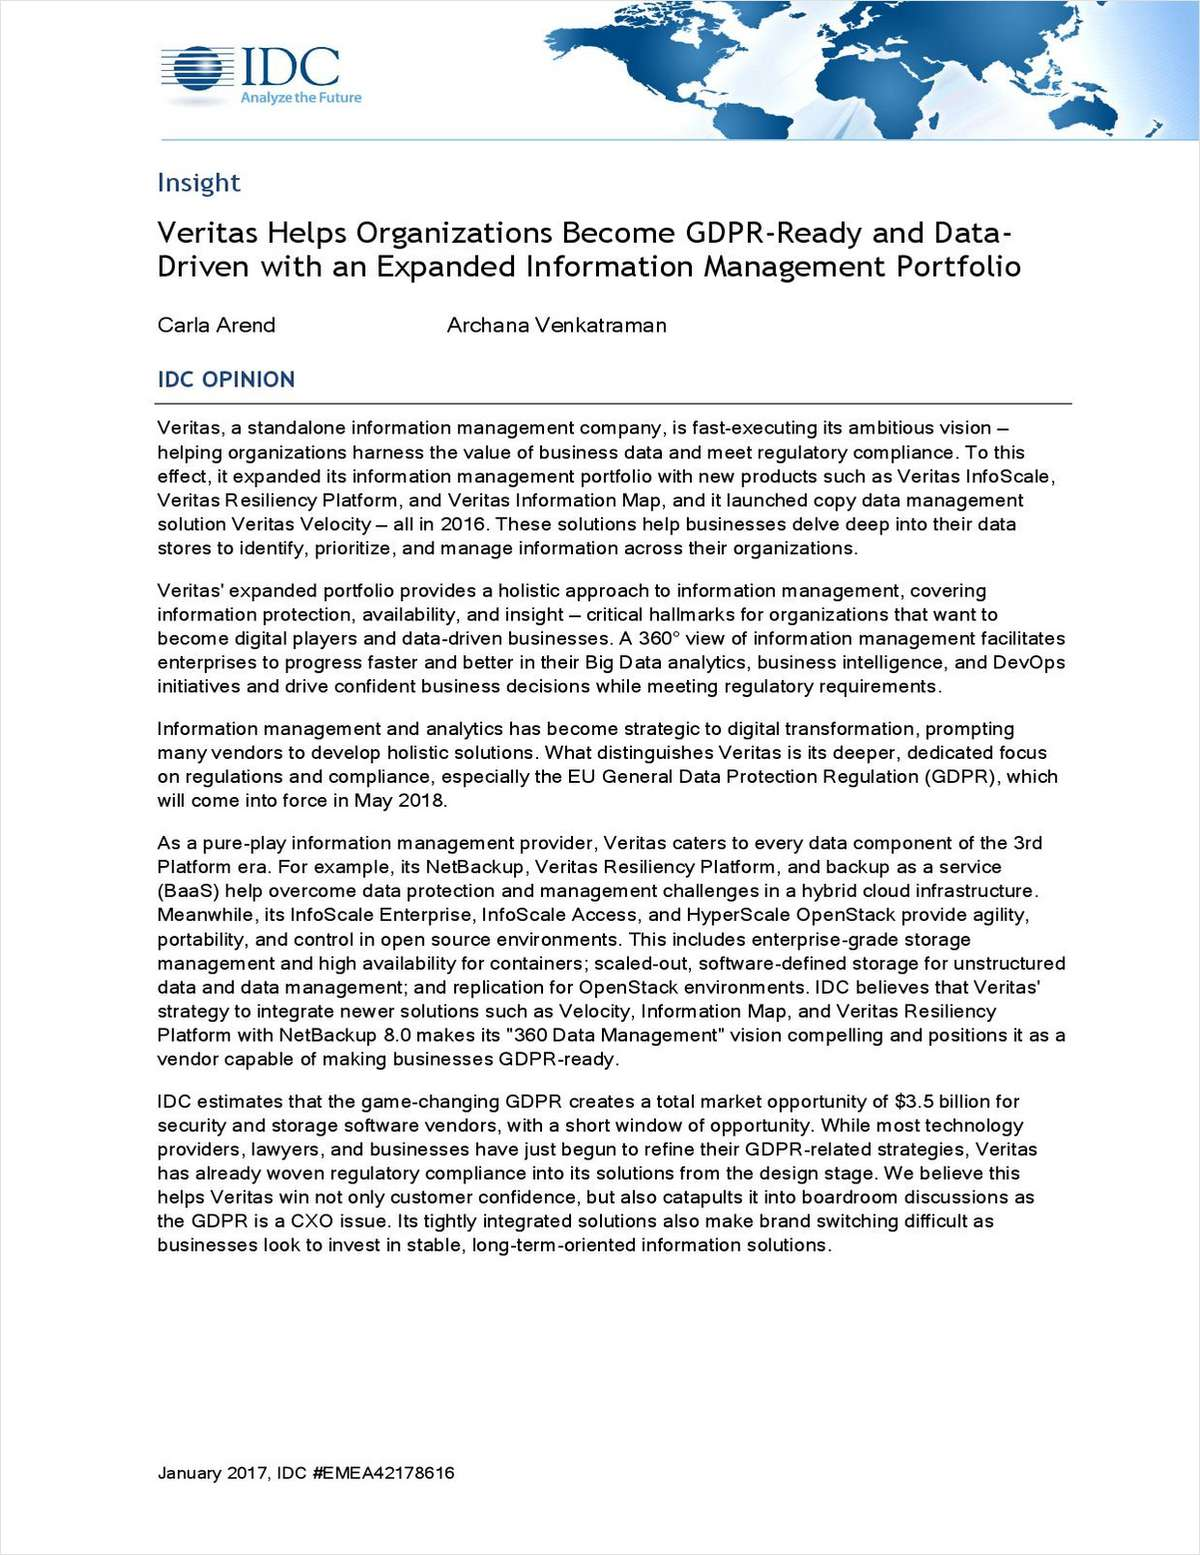 IDC: Veritas Helps Organizations Become GDPR-Ready and Data-Driven with an Expanded Information Management Portfolio